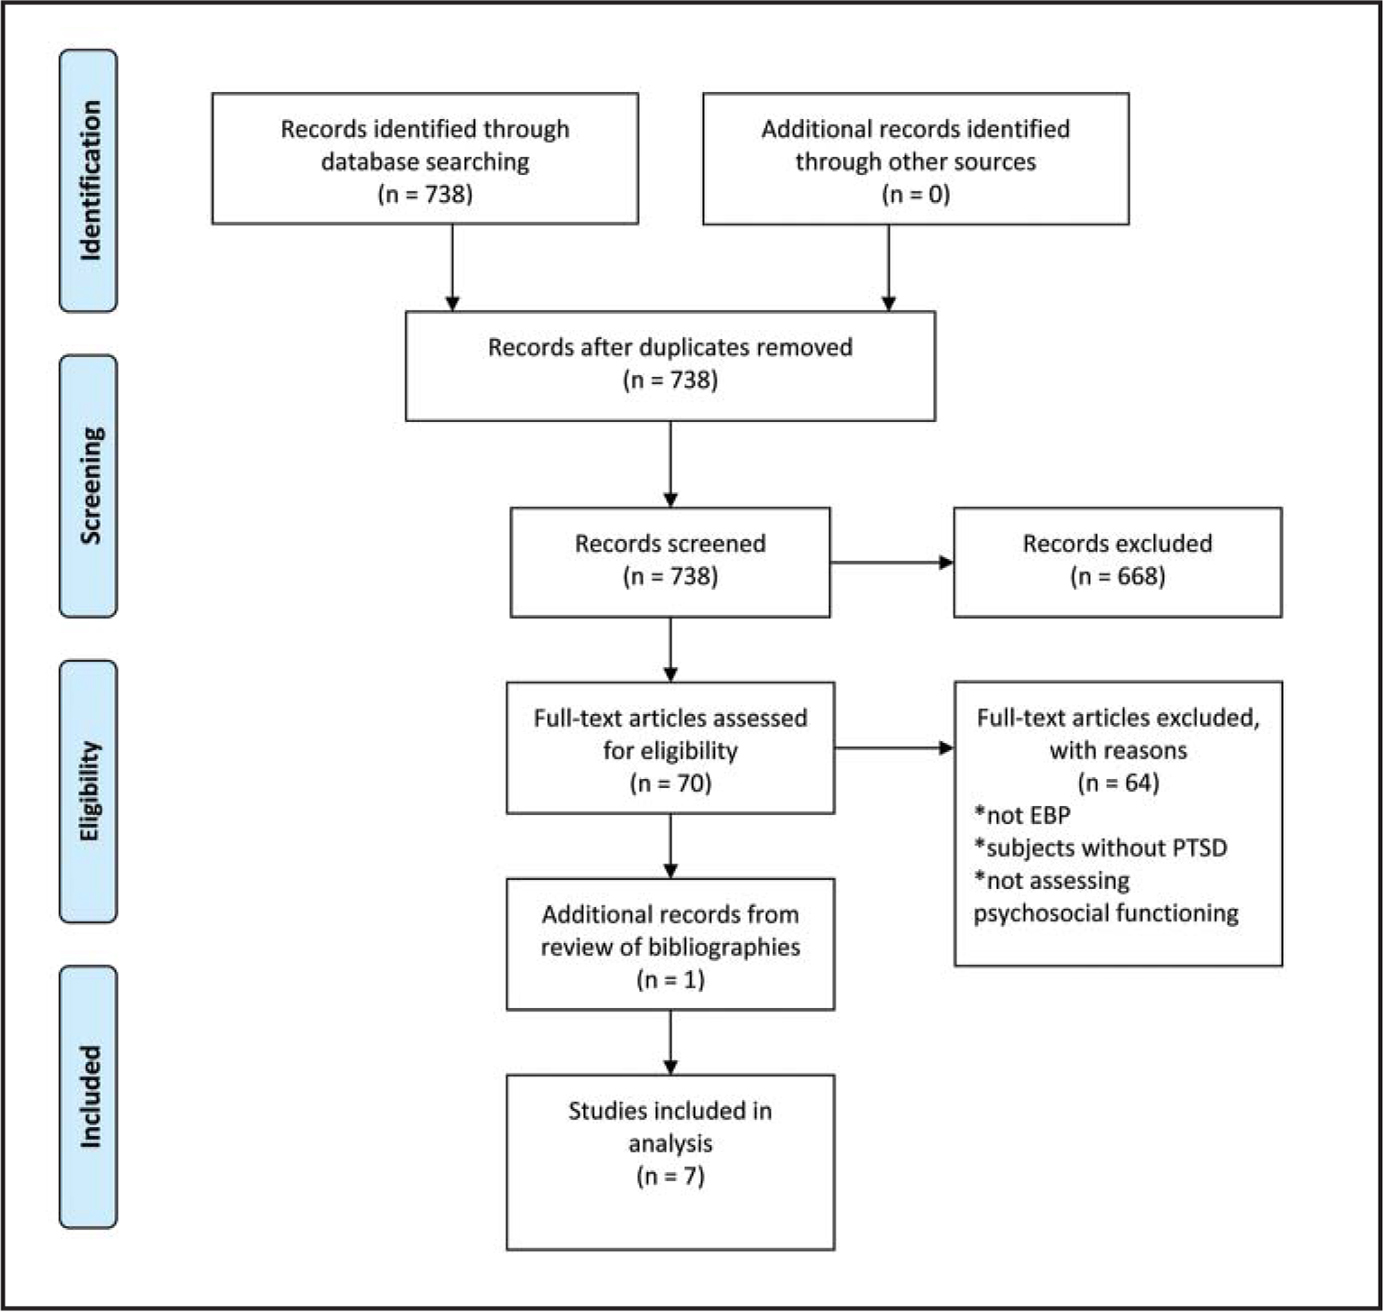 PRISMA flow diagram (Moher et al., 2009).Note. EBP = evidence-based psychotherapy; PTSD = posttraumatic stress disorder.